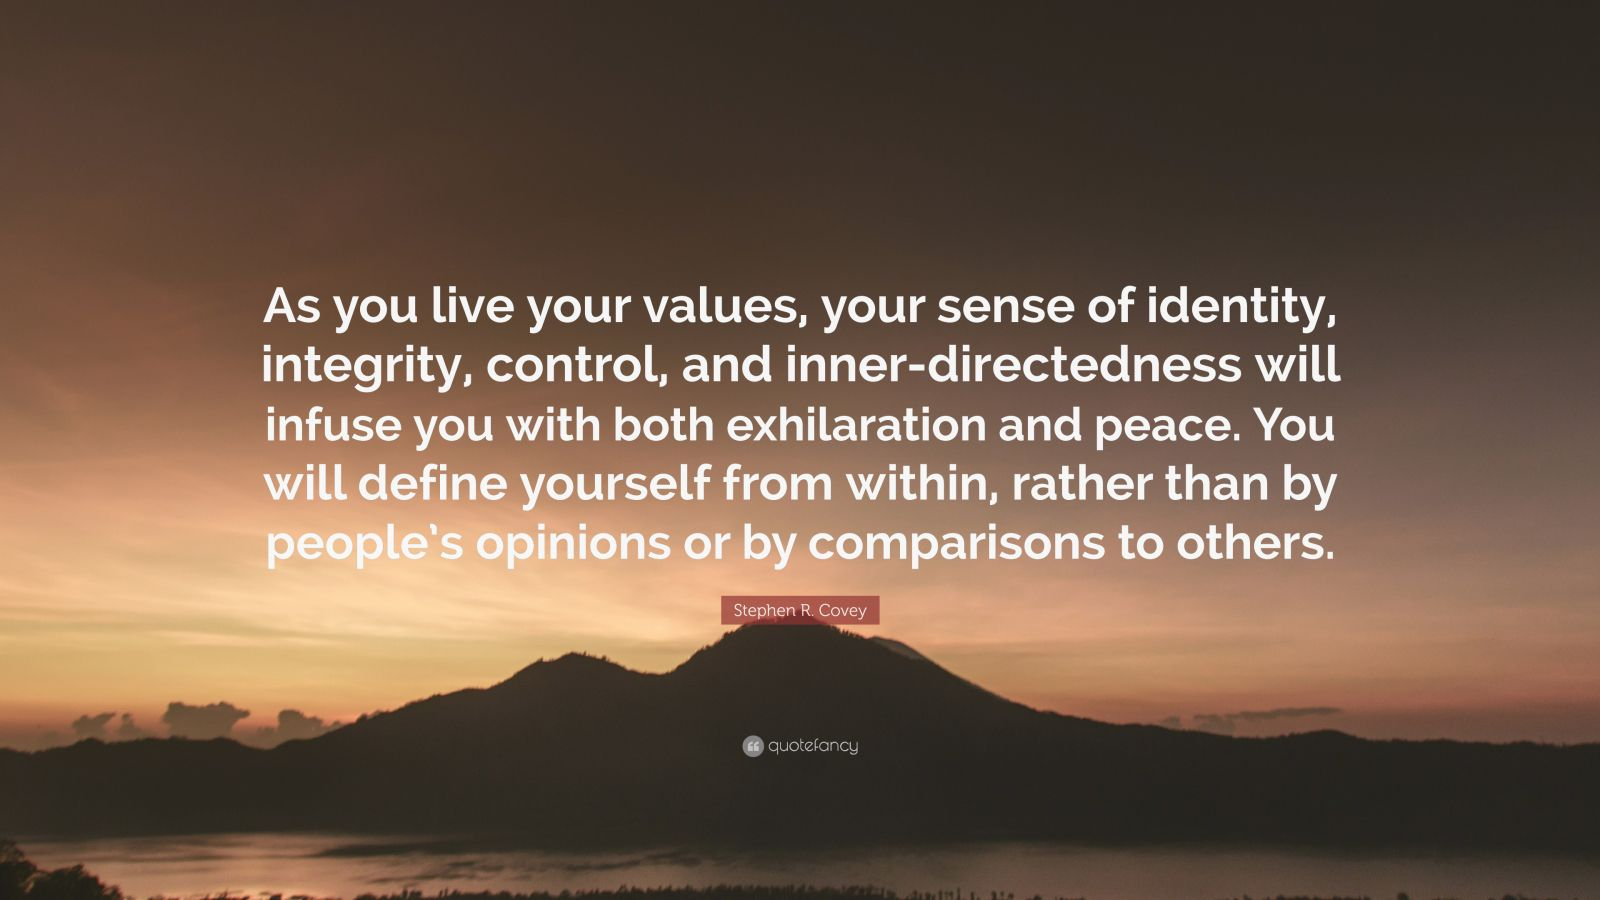 """Stephen R. Covey Quote: """"As you live your values, your sense of identity, integrity, control, and inner-directedness will infuse you with both exhilaration and peace. You will define yourself from within, rather than by people's opinions or by comparisons to others."""""""